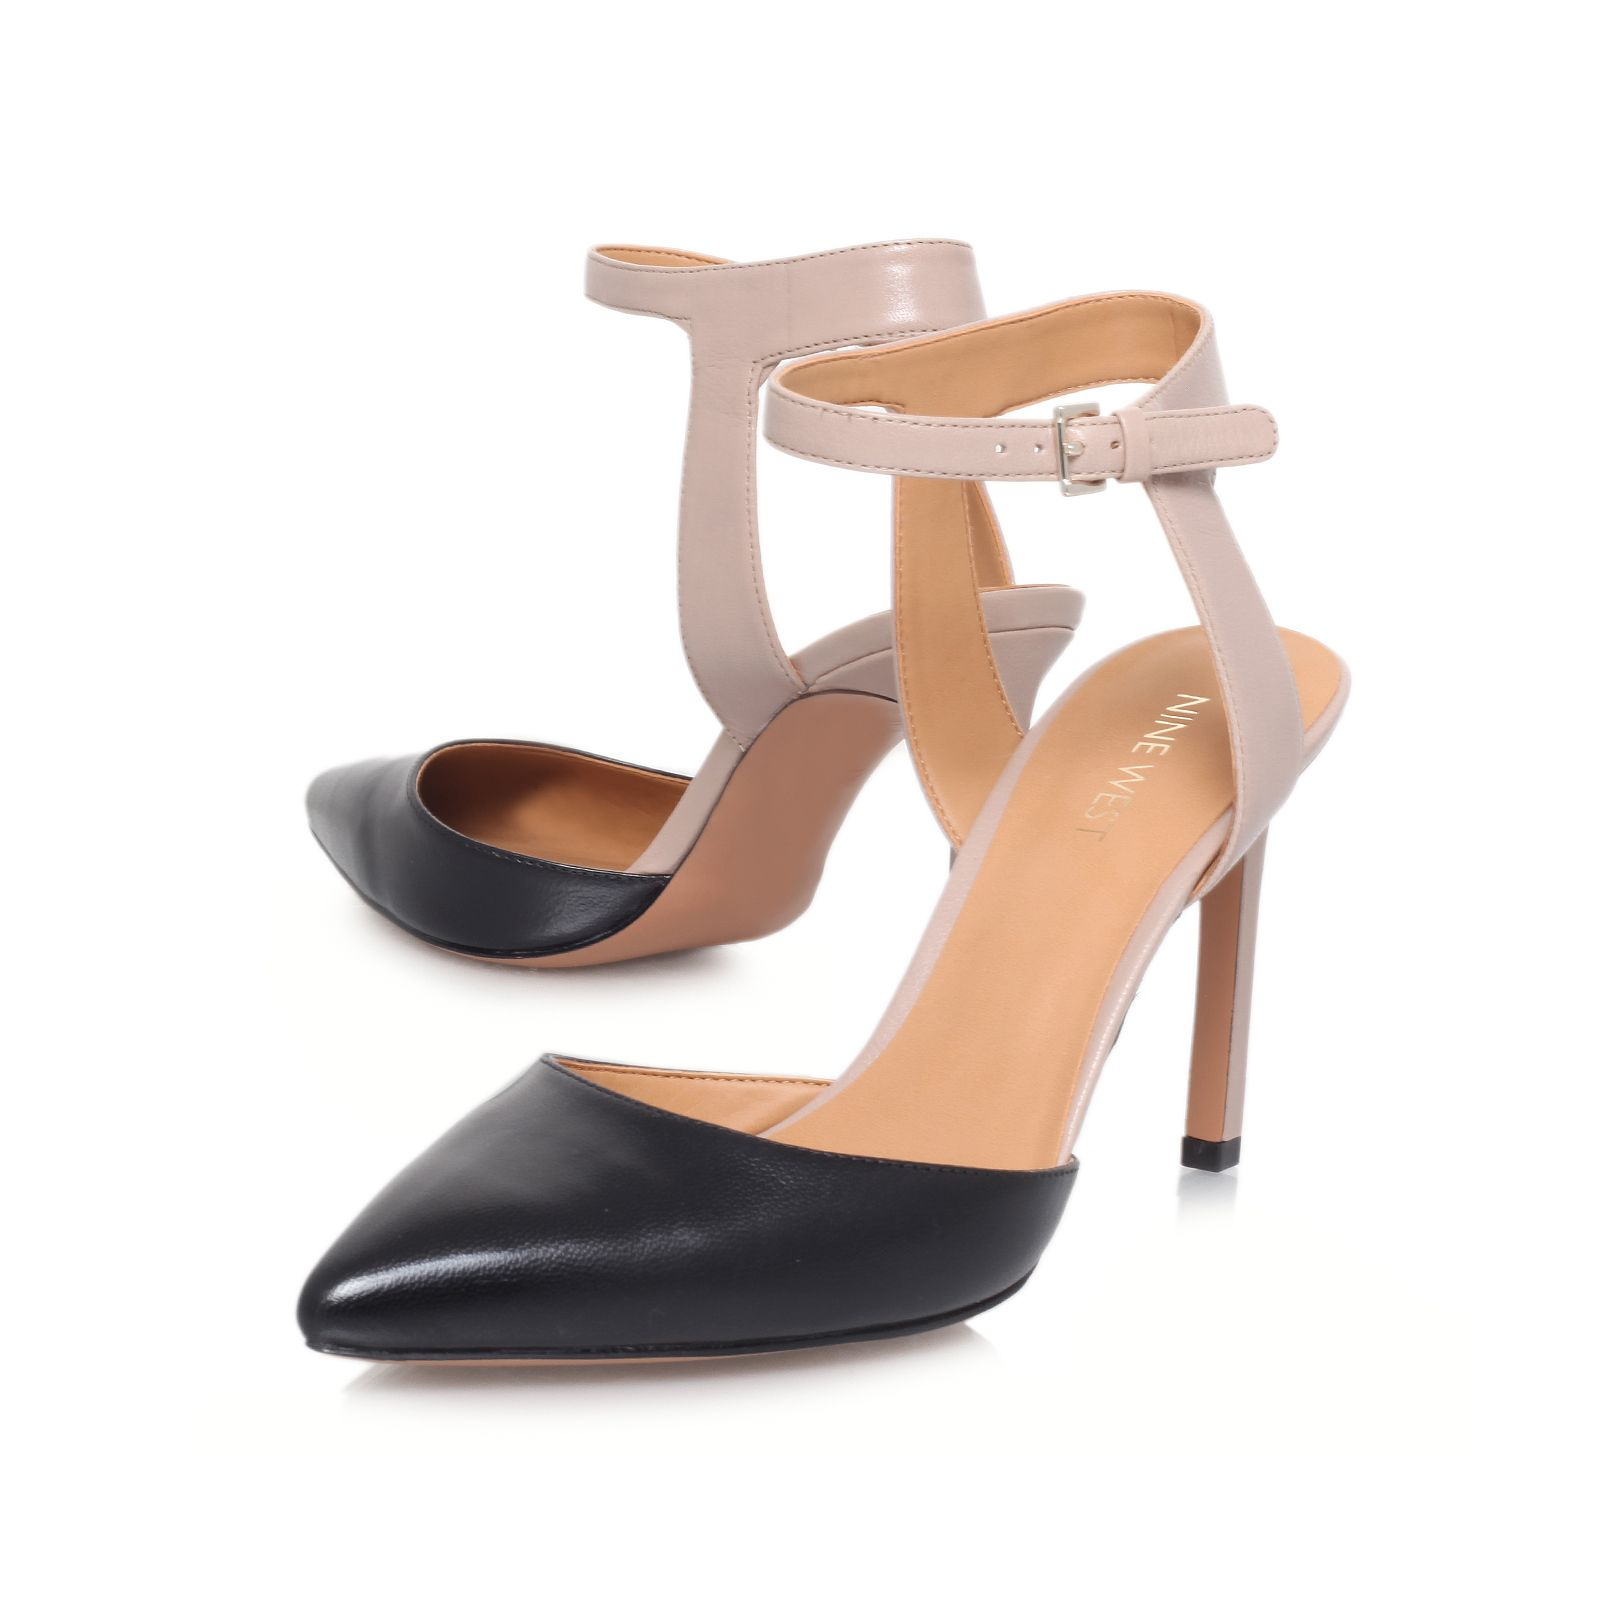 Capricious high heeled court shoes